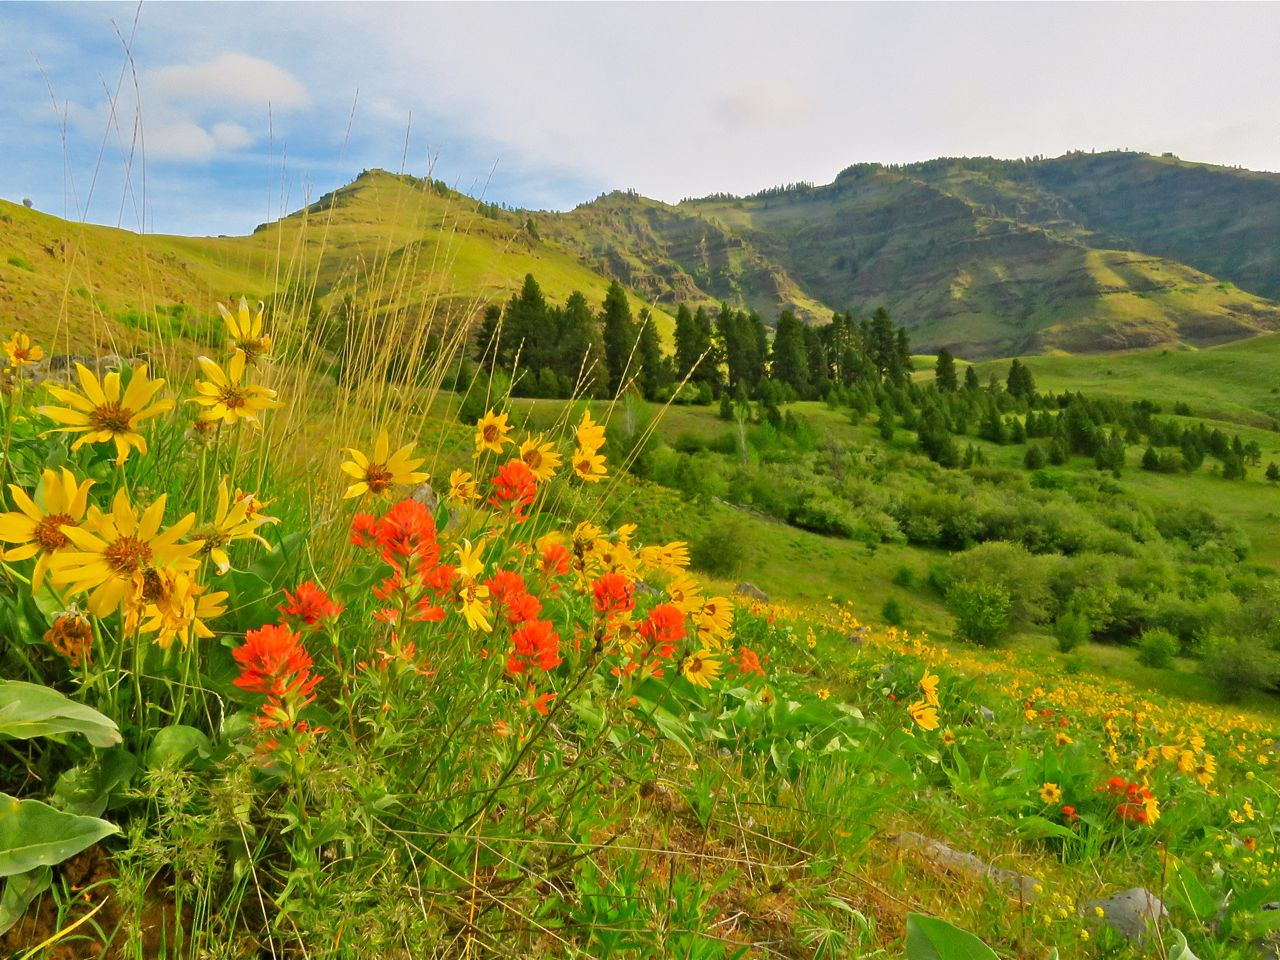 Snake river hells canyon wilderness